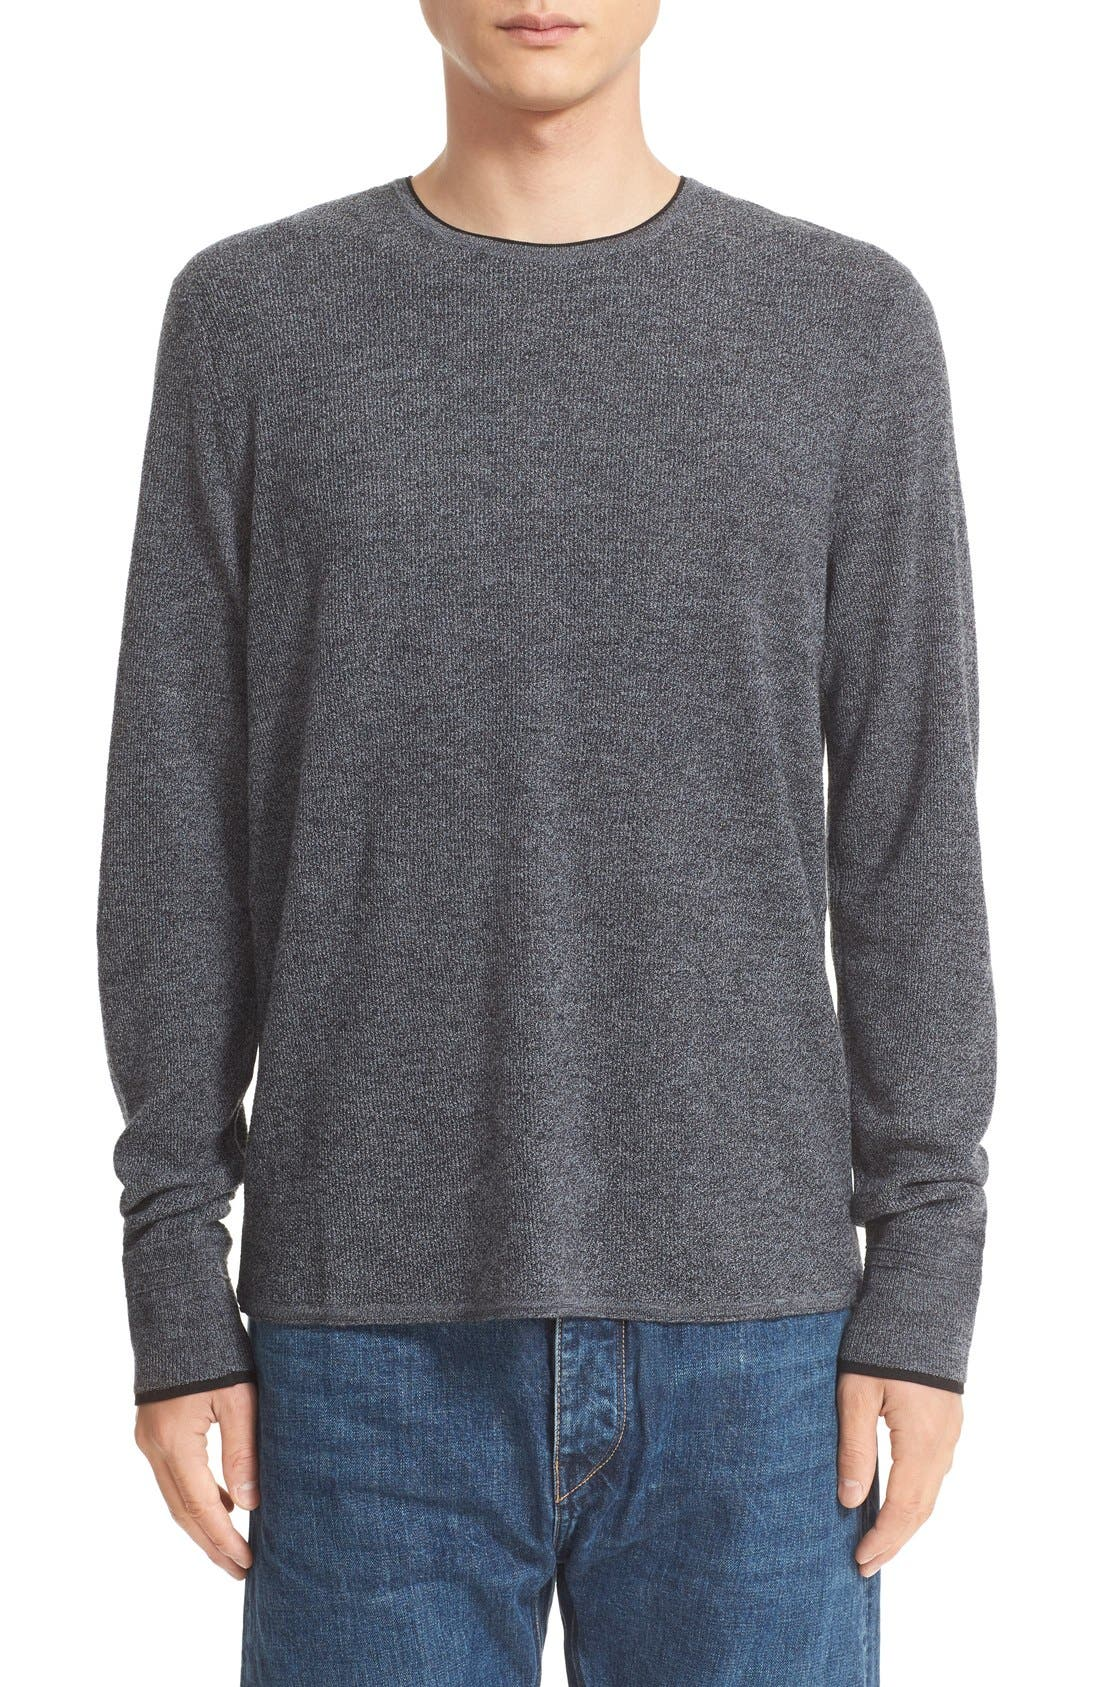 'Giles' Lightweight Merino Wool Pullover,                         Main,                         color, Charcoal